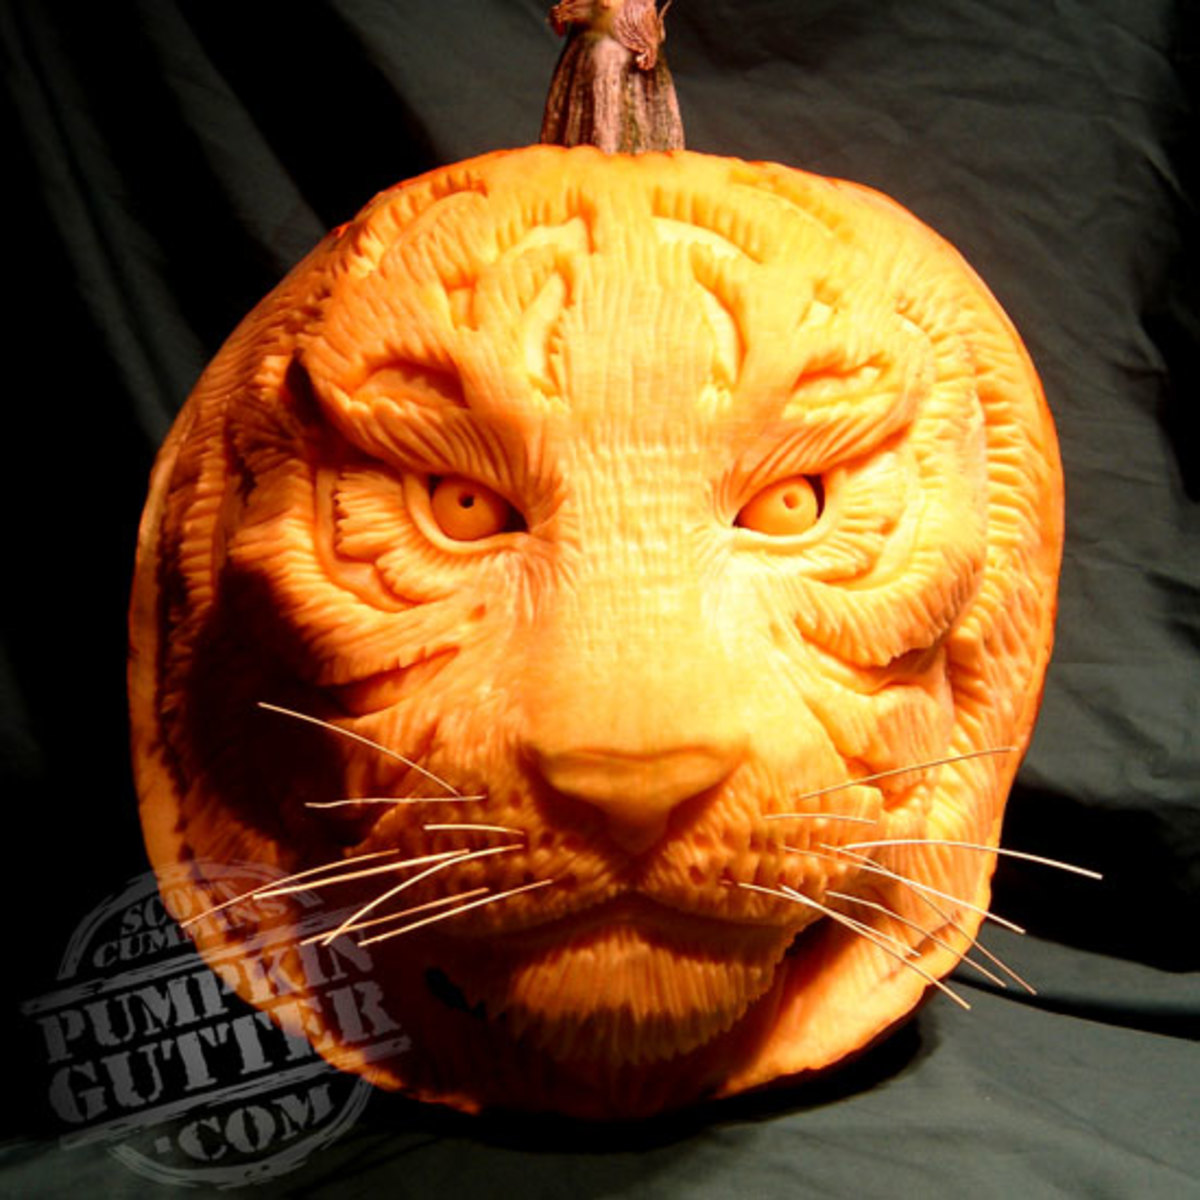 extreme pumpkin carving templates - photos of amazing unique pumpkin carving designs hubpages